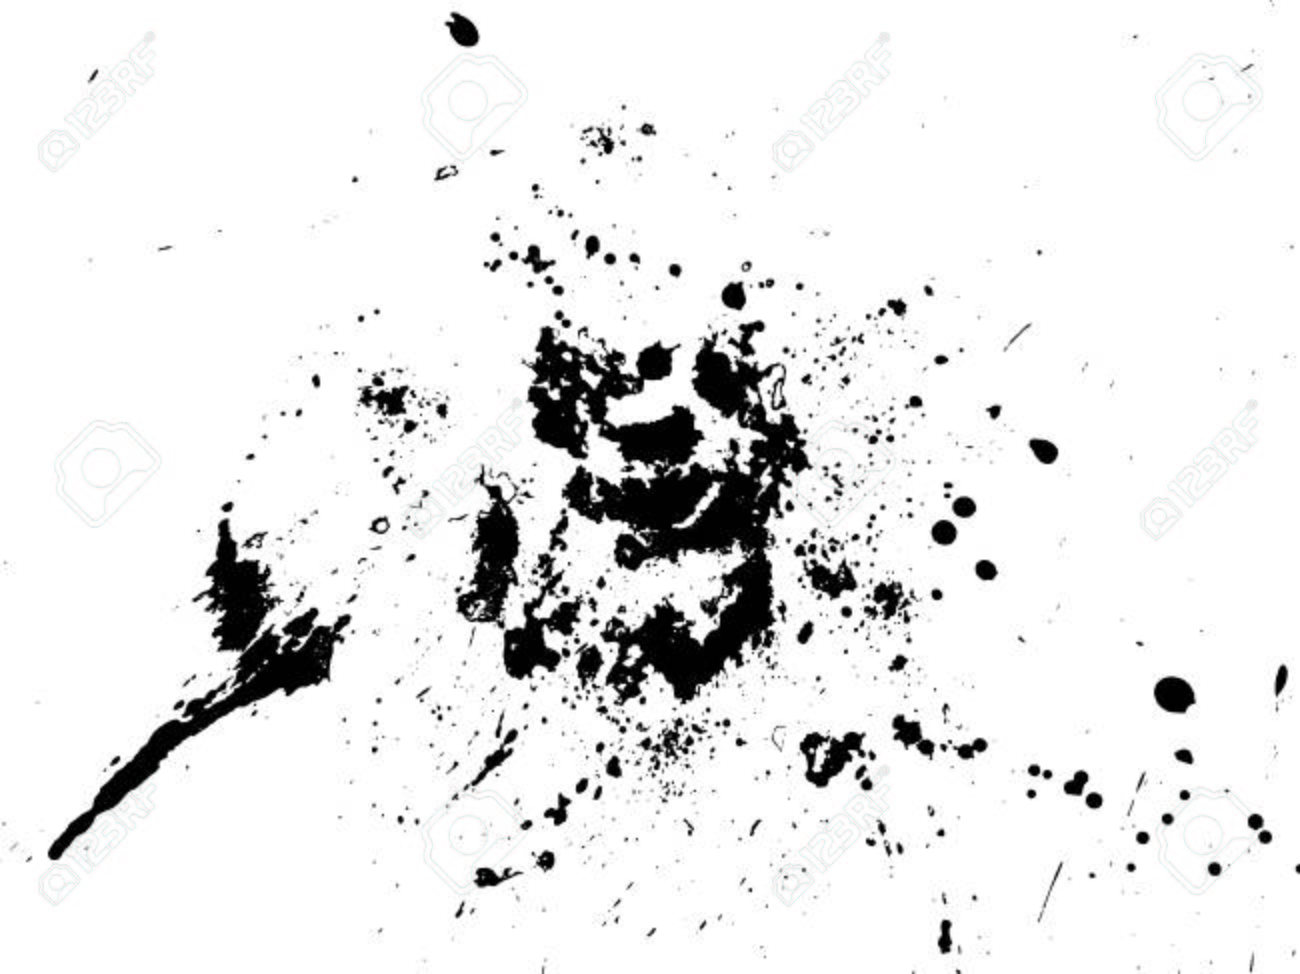 Hand-made grunge texture  Abstract ink drops background  Black